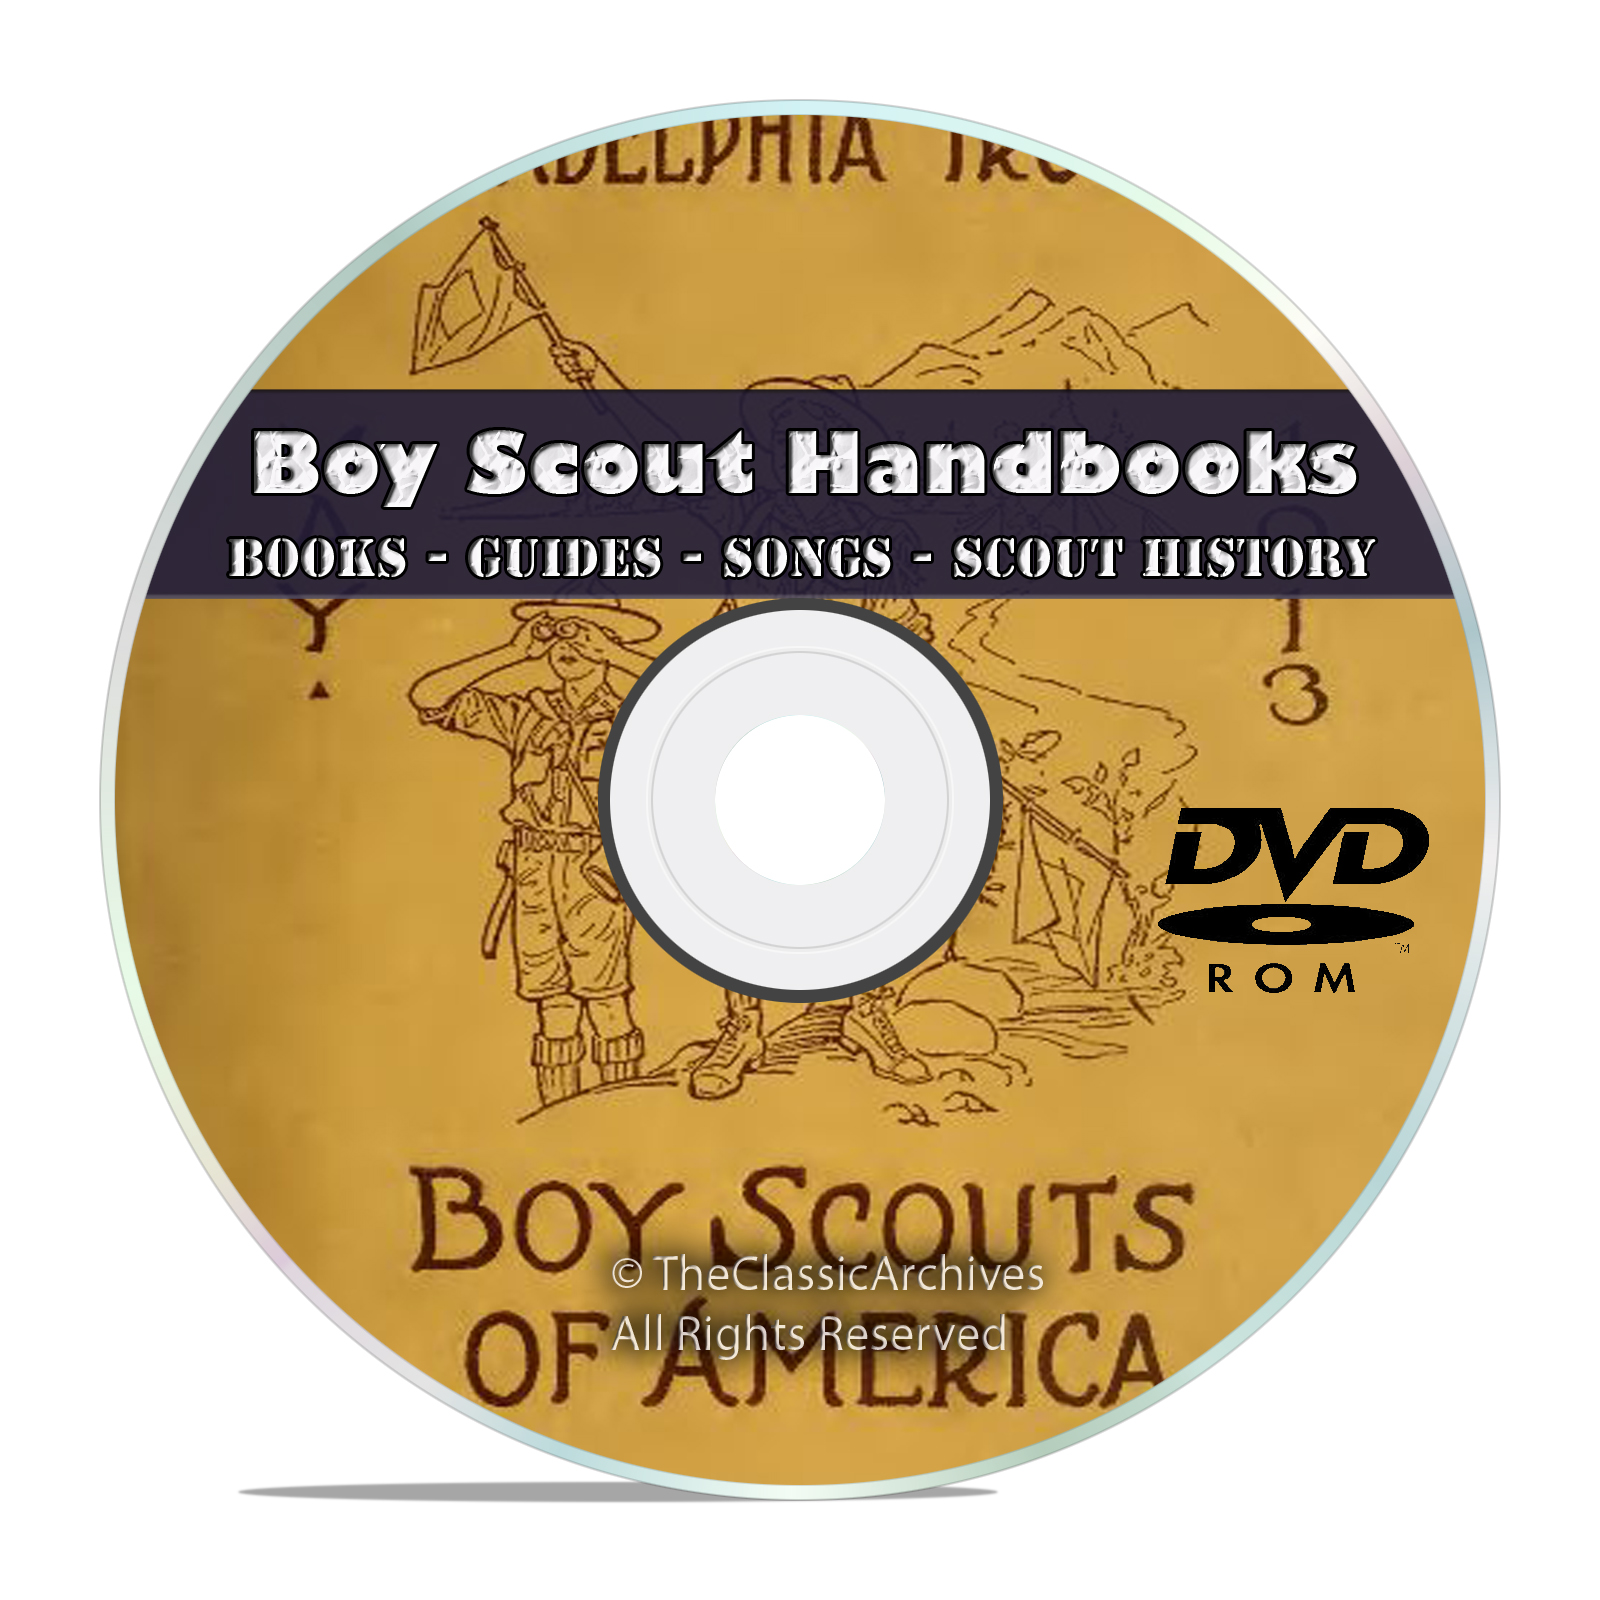 360 Boy Scout Handbooks Collection, Scouting, Songs, Magazines, Books DVD